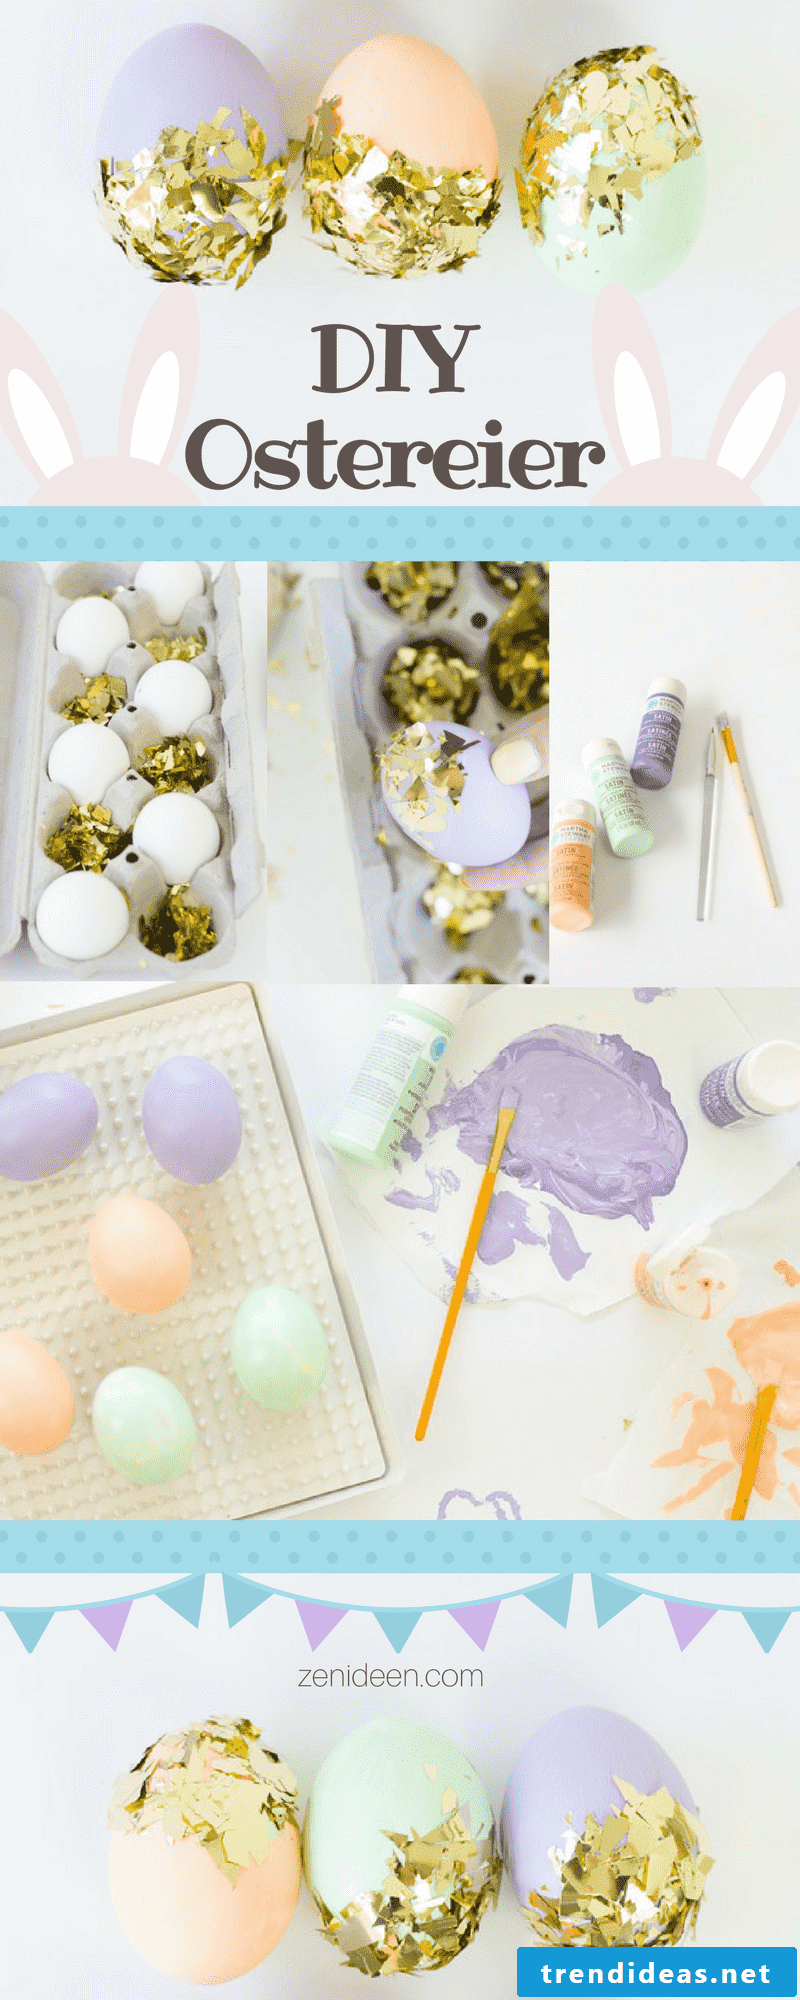 Still many creative ideas for Easter eggs without color dyeing can be found down there.  We wish you a lot of fun with crafts and Happy Easter!